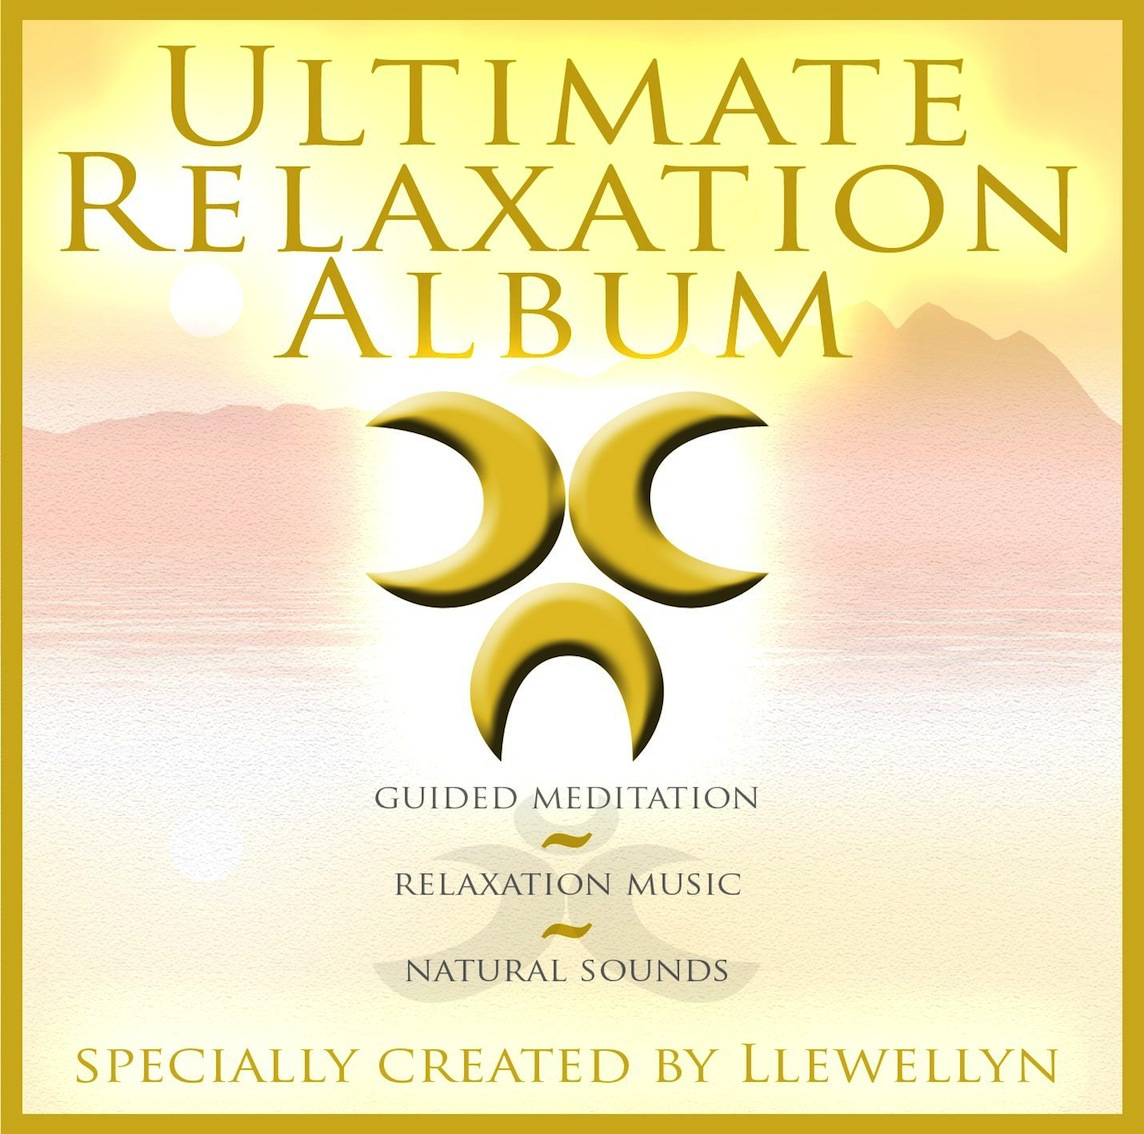 Ultimate Relaxation Album CD